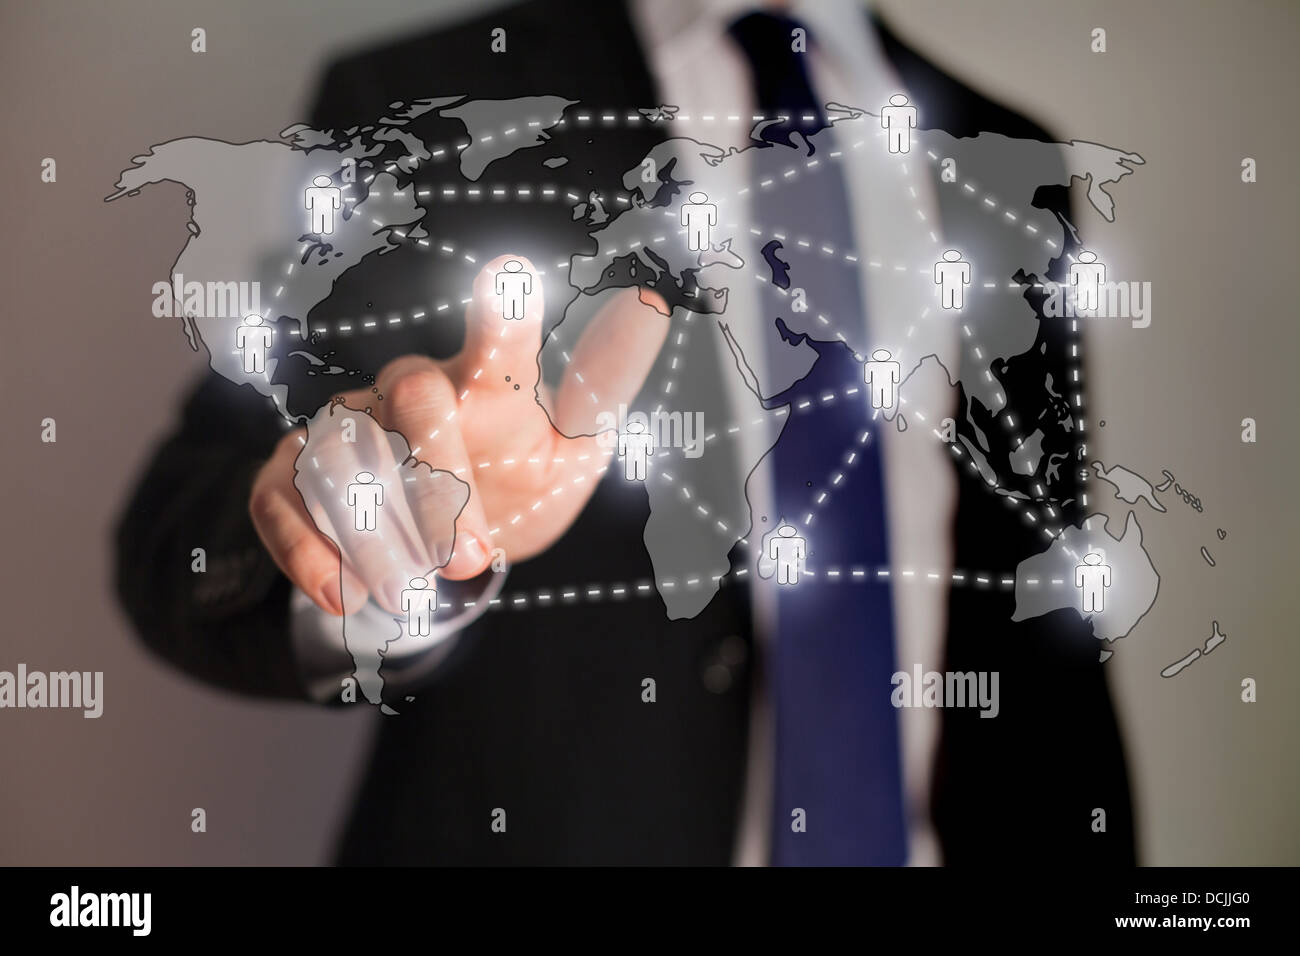 social network and business technologies - Stock Image